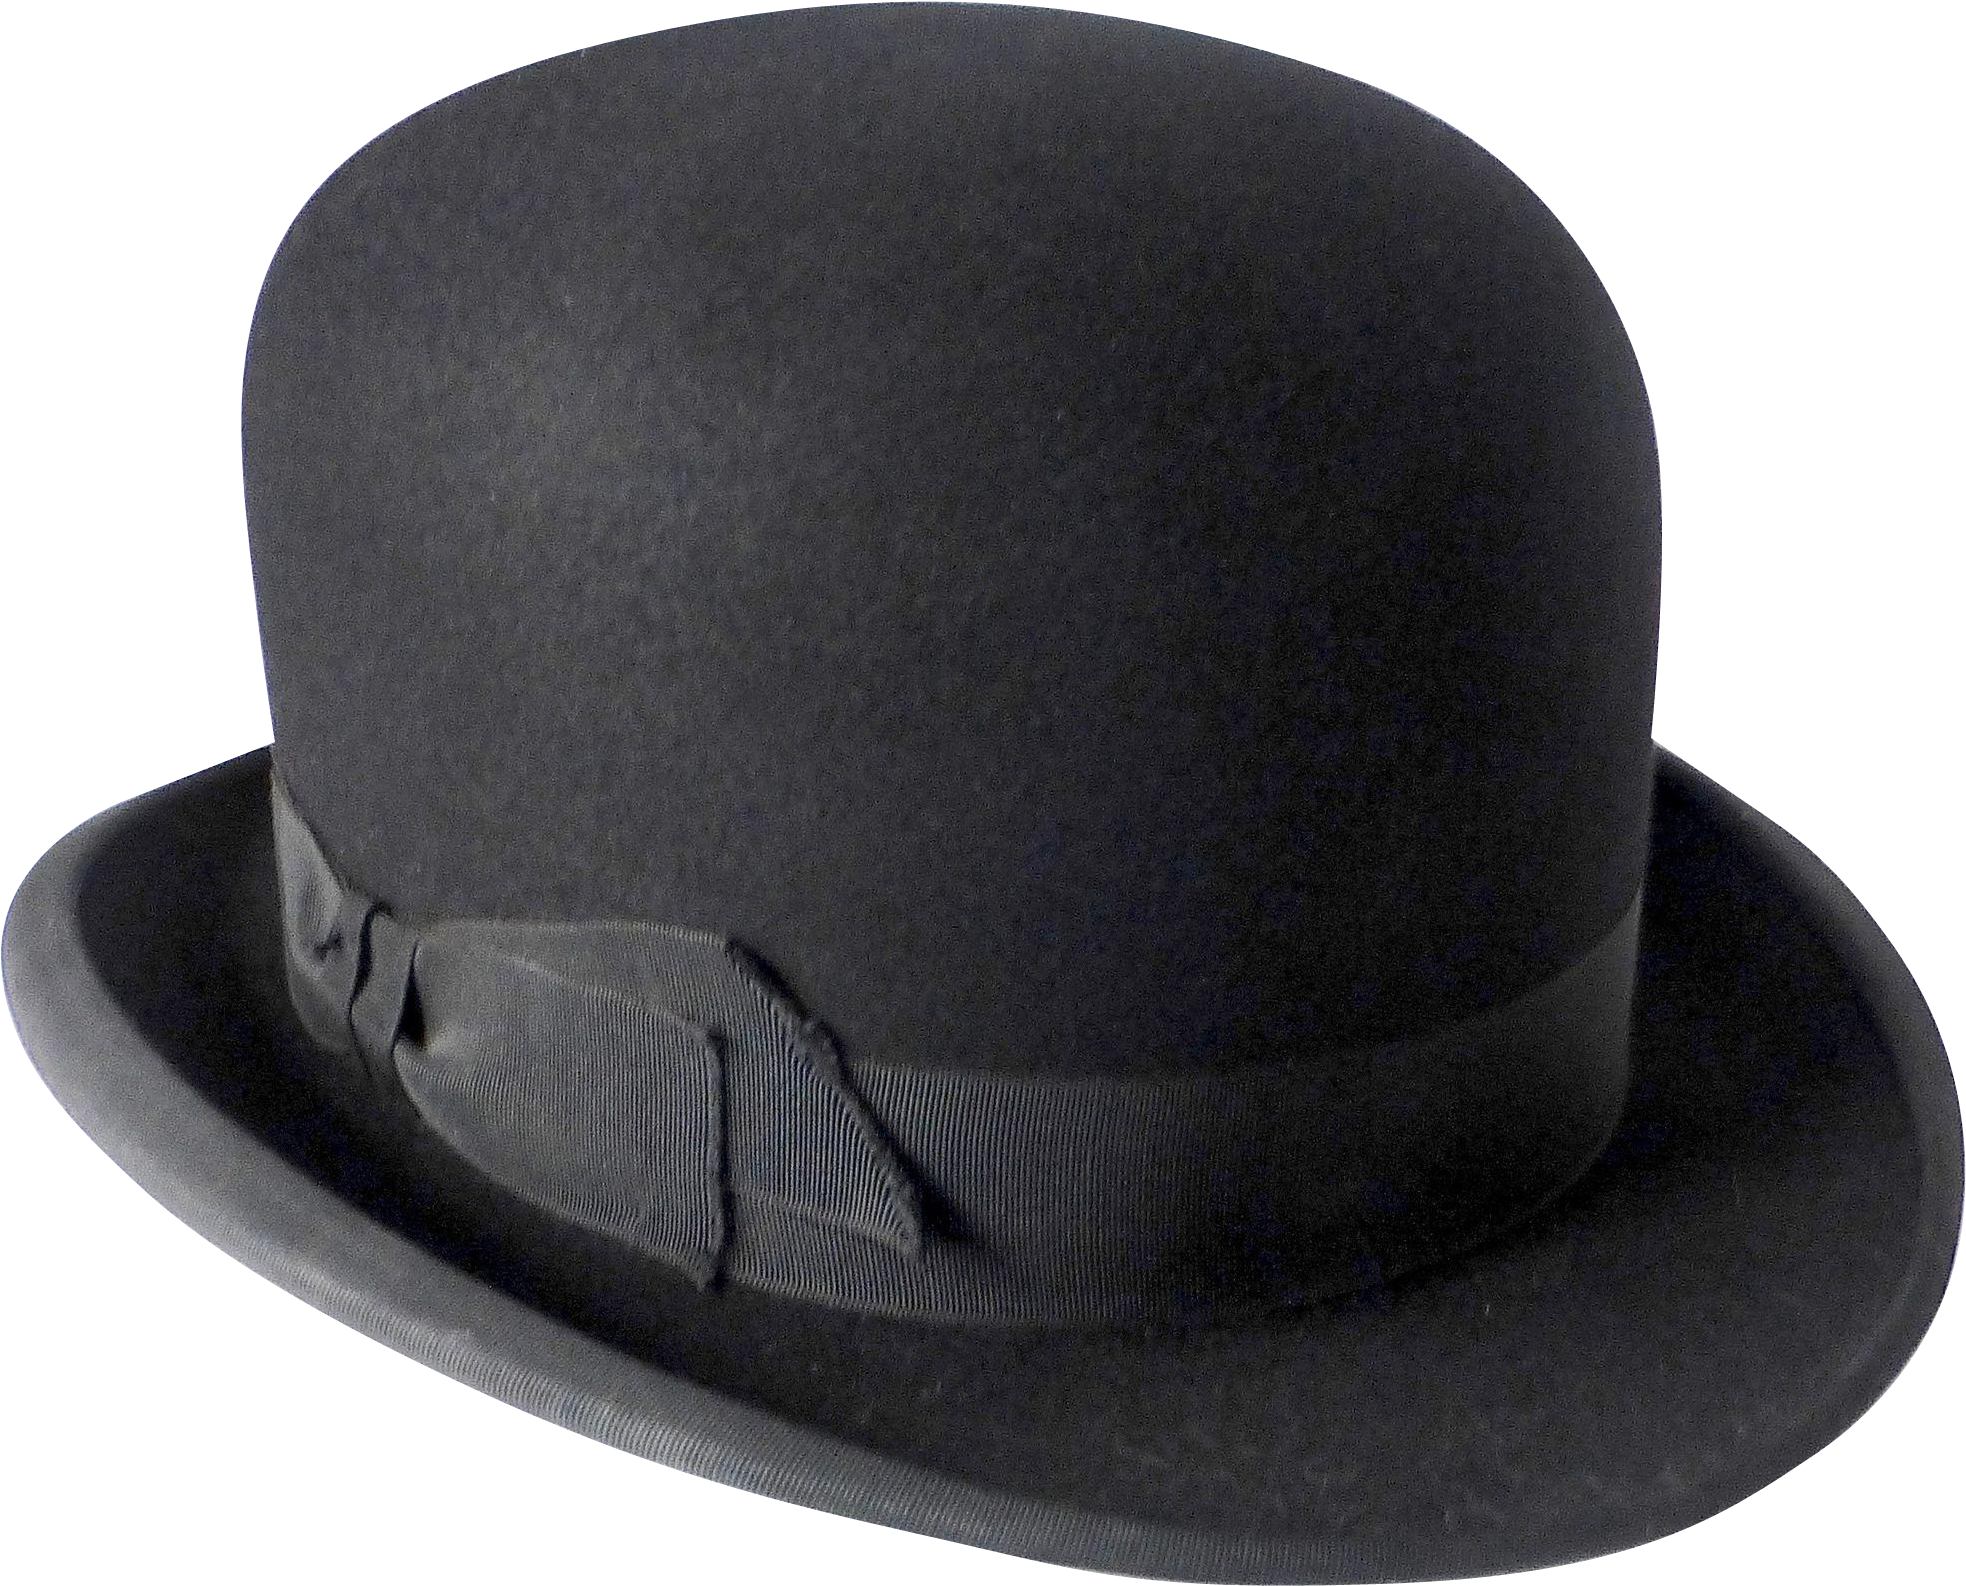 top hat png - Top Hat Png - Bowler Hat   #1137683 - Vippng